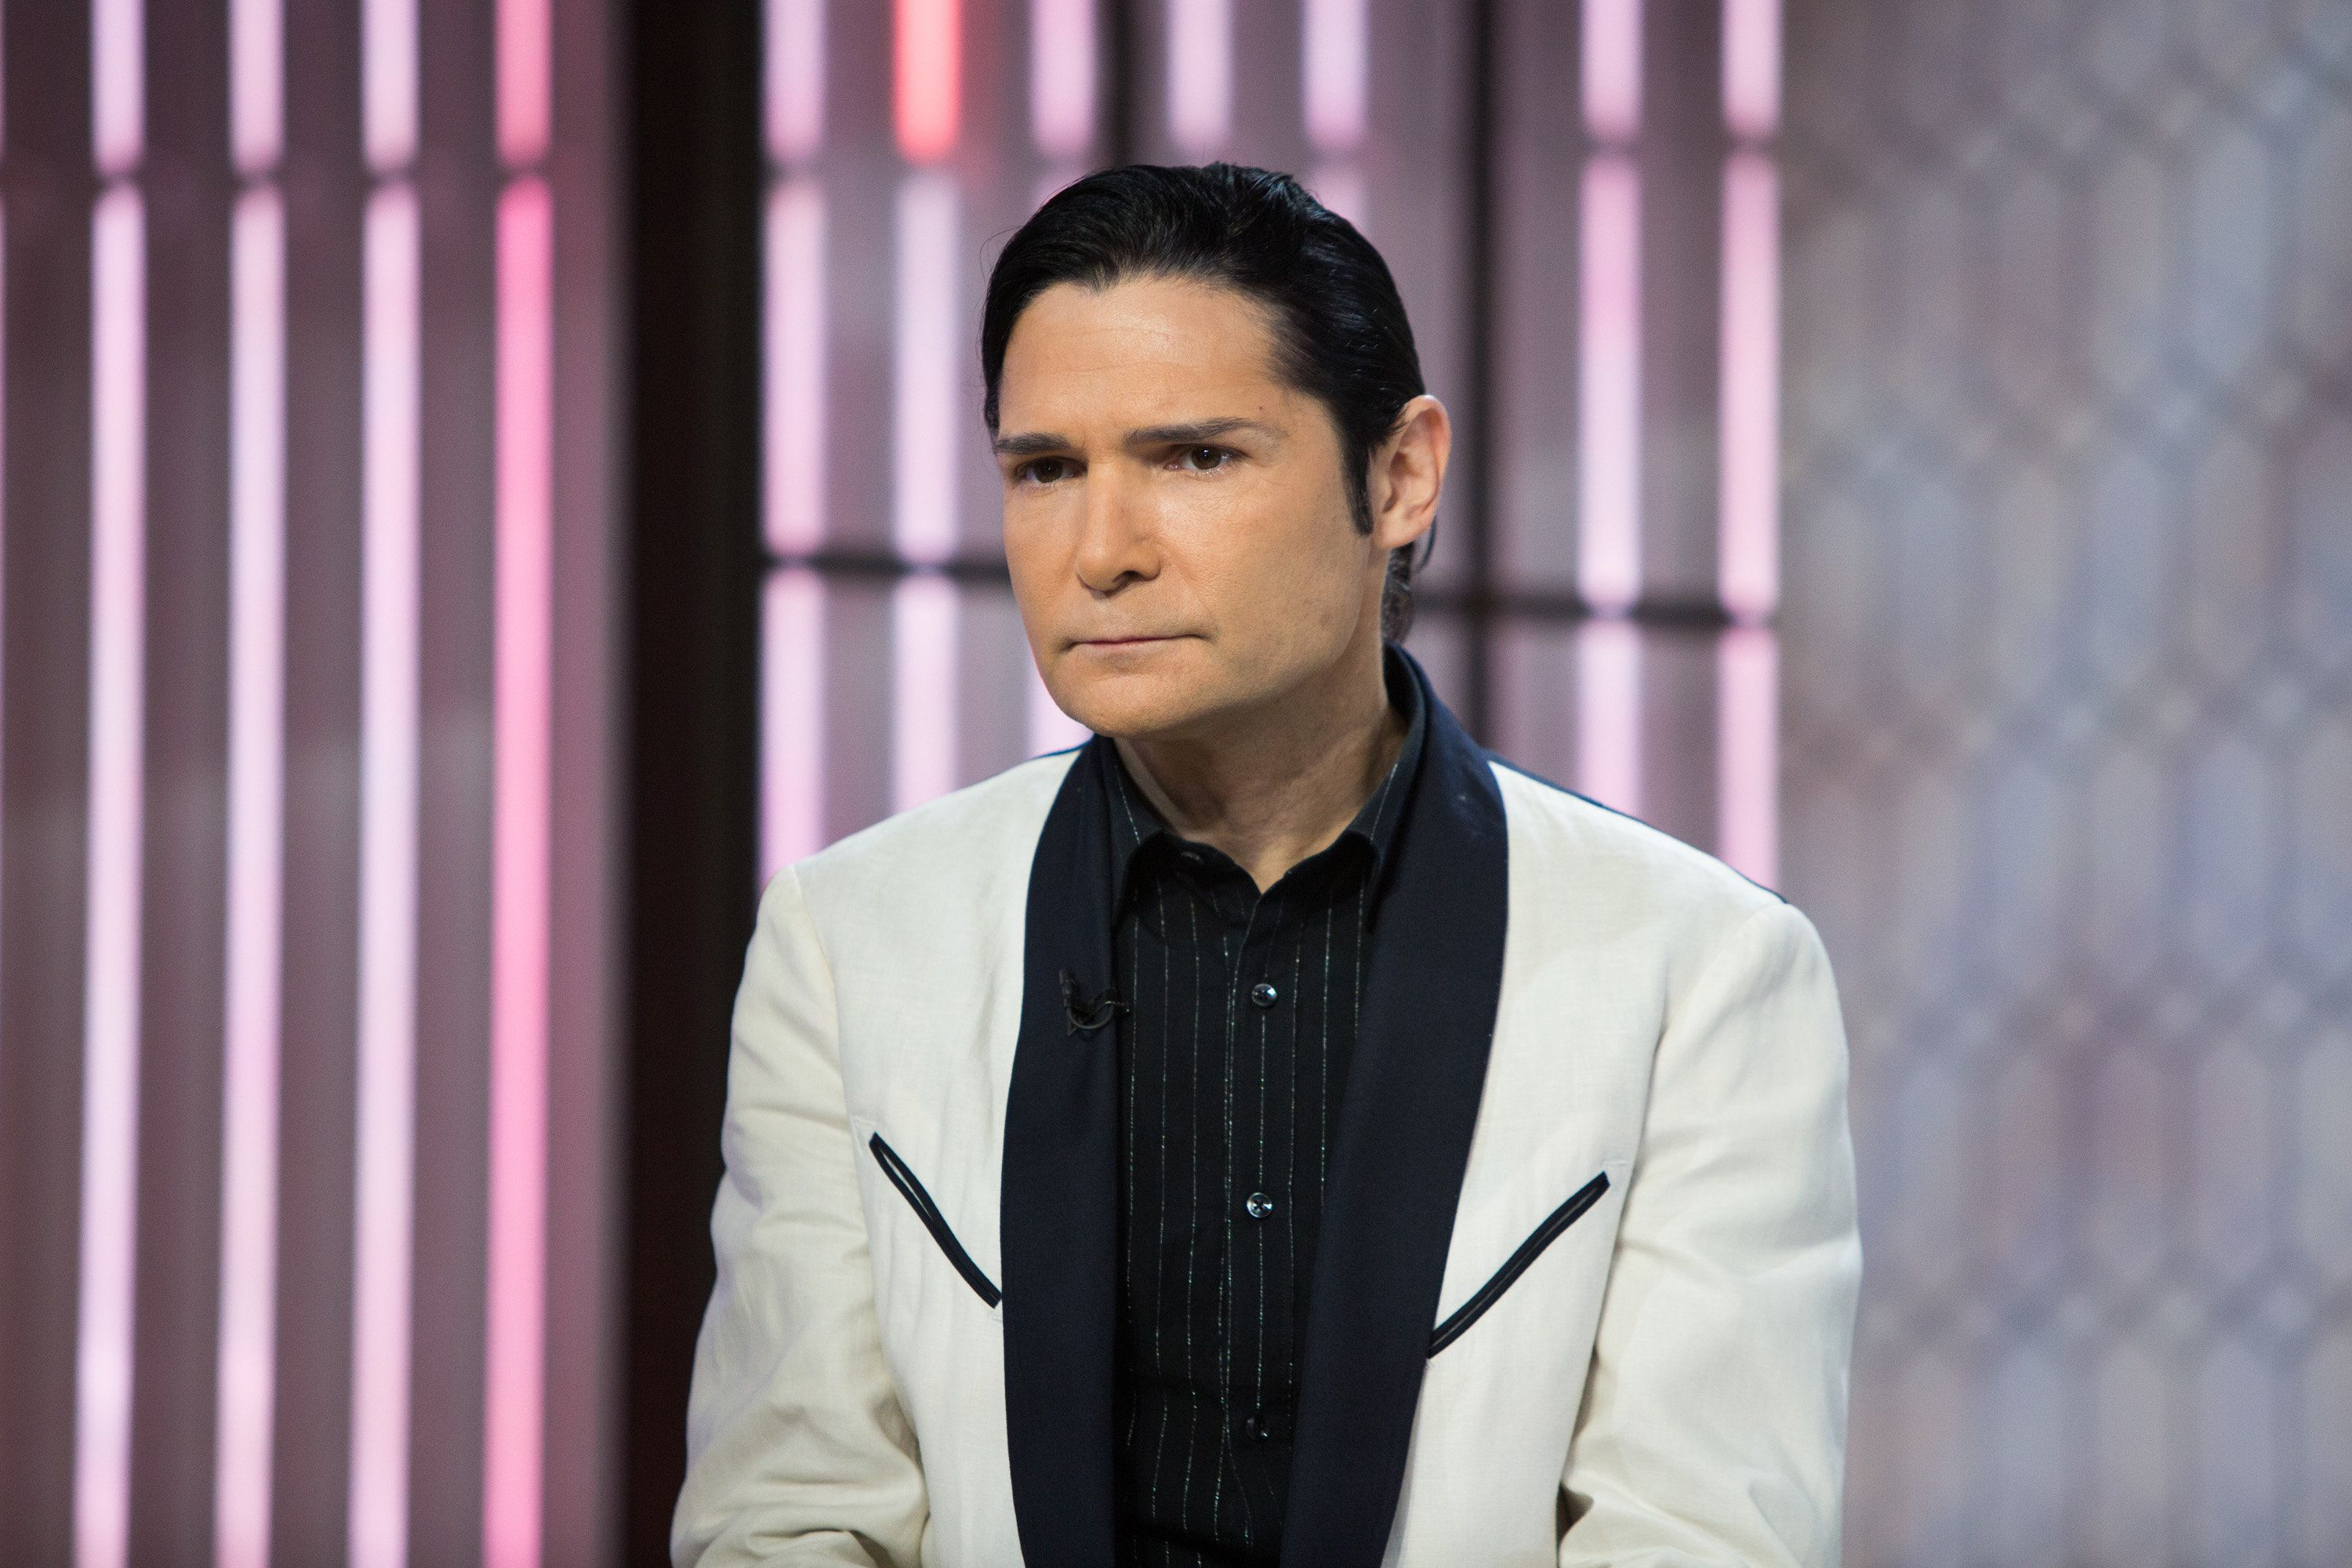 Audio of Corey Feldman Interview From 1993 Resurfaces in Santa Barbara